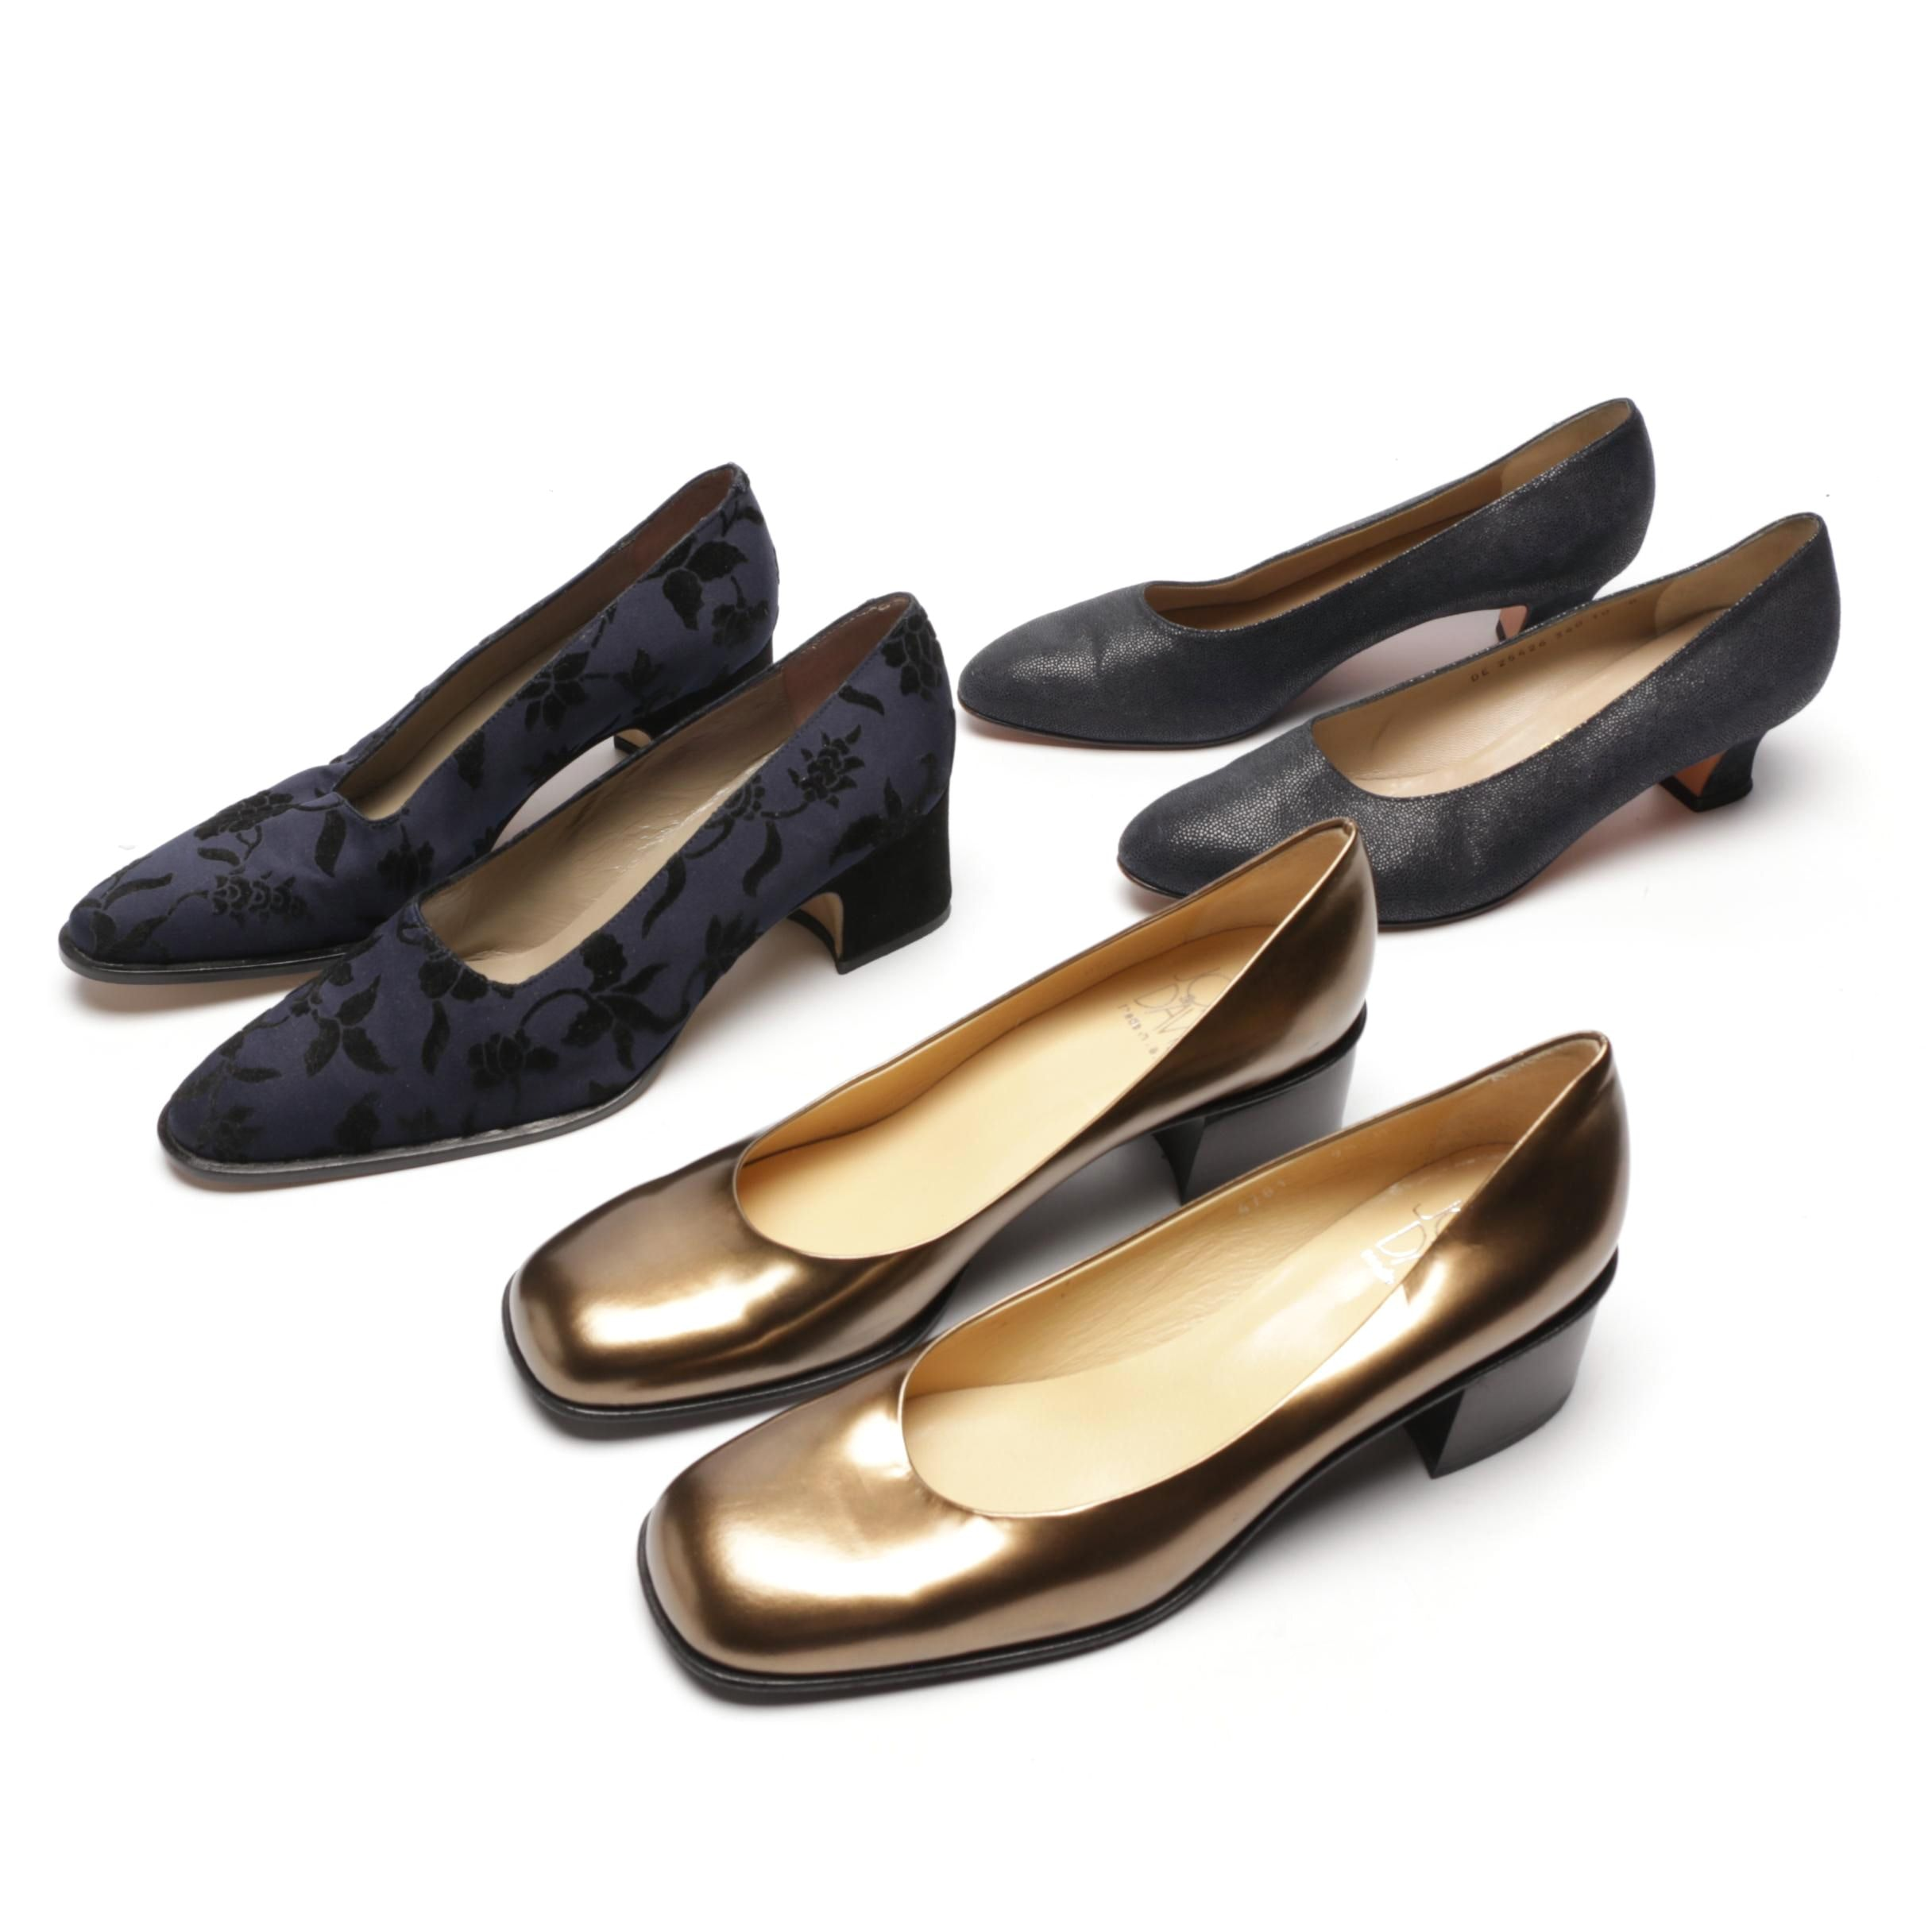 Women's Low-Heeled Shoes Including Salvatore Ferragamo and Joan & David